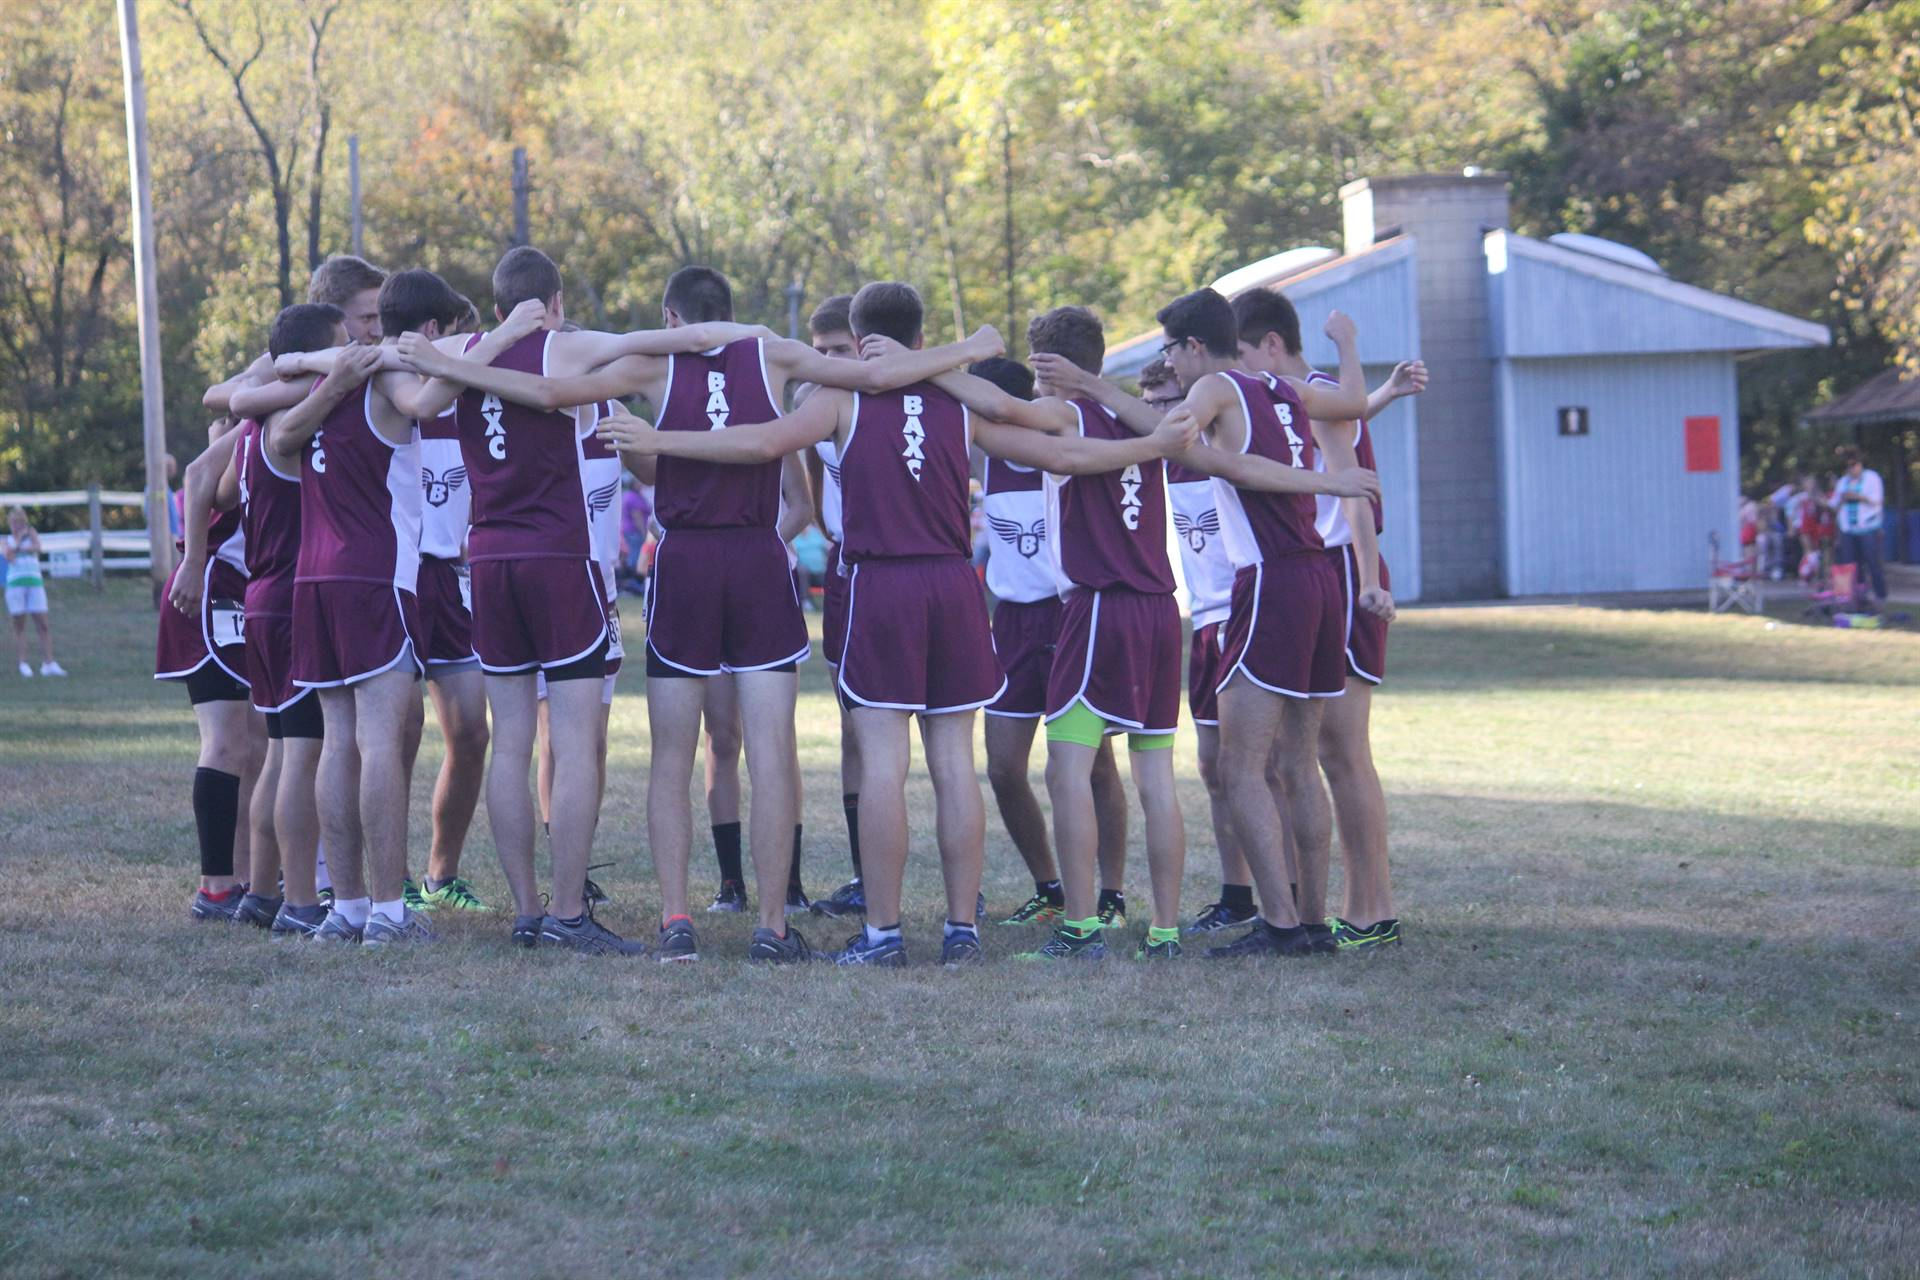 Boy's Cross Country - Preparing the team before the race!